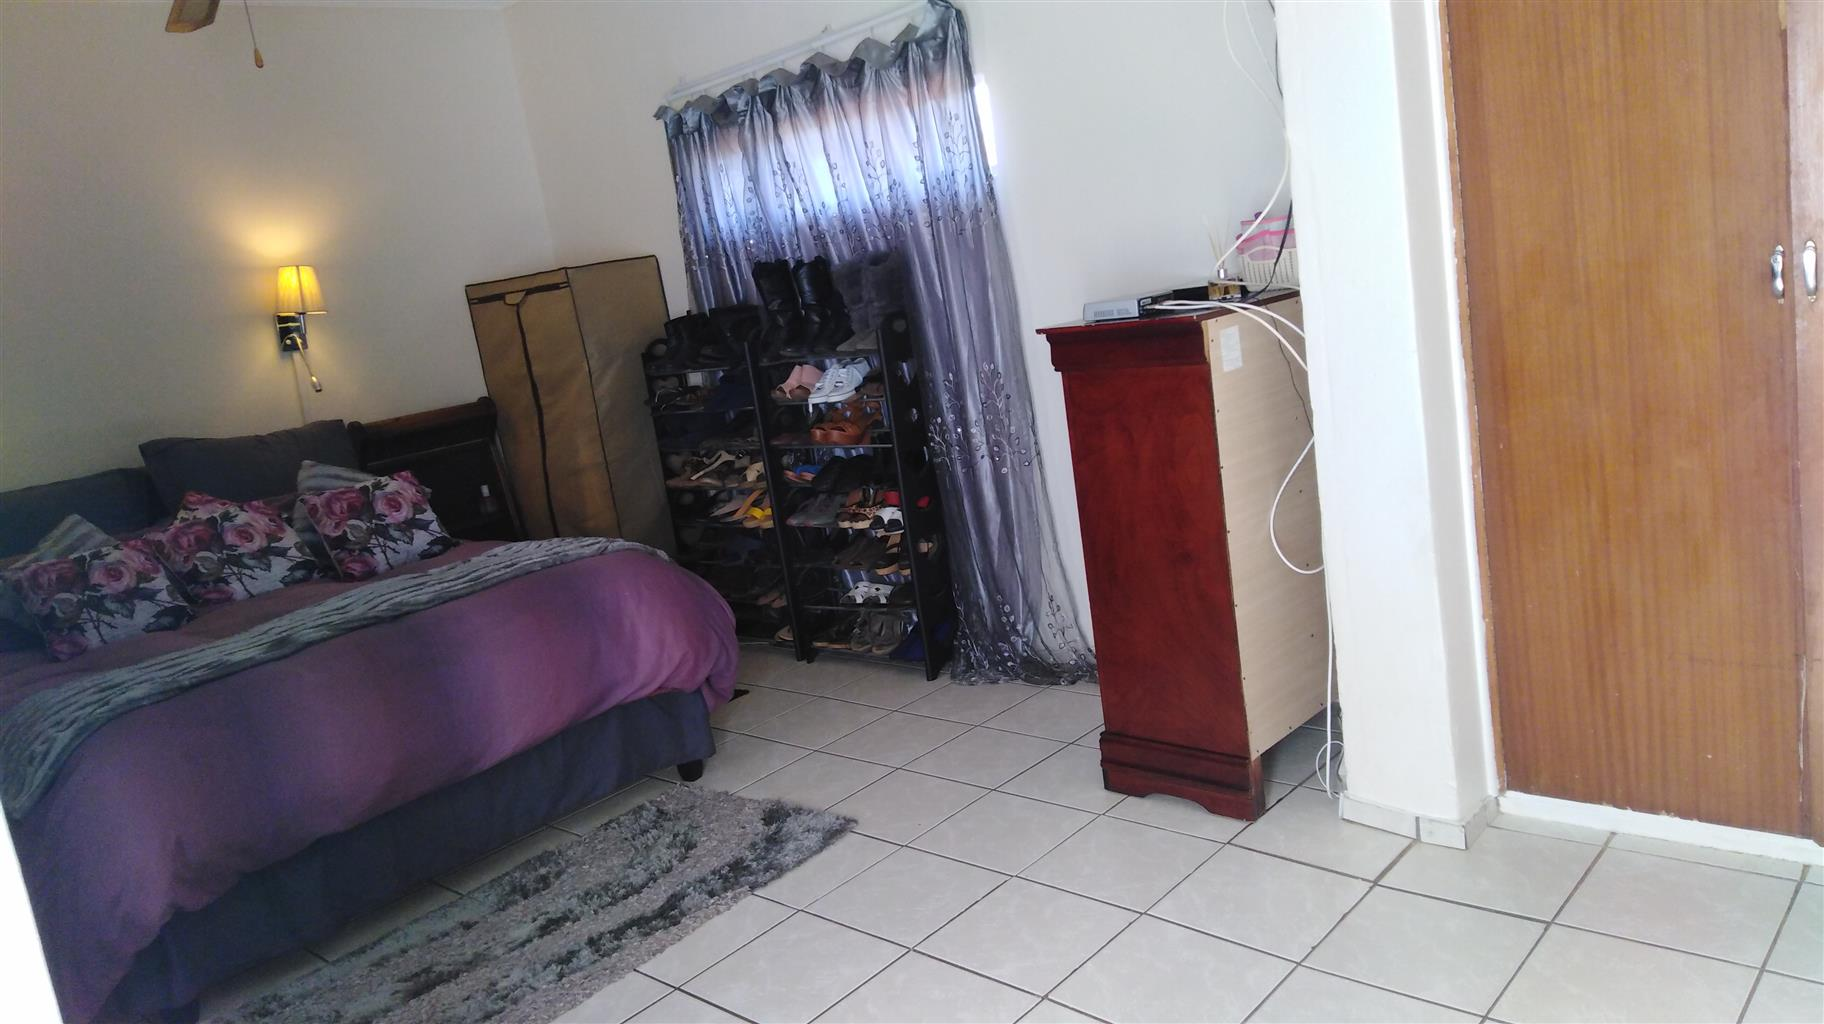 4 bedroom house for rental R6000